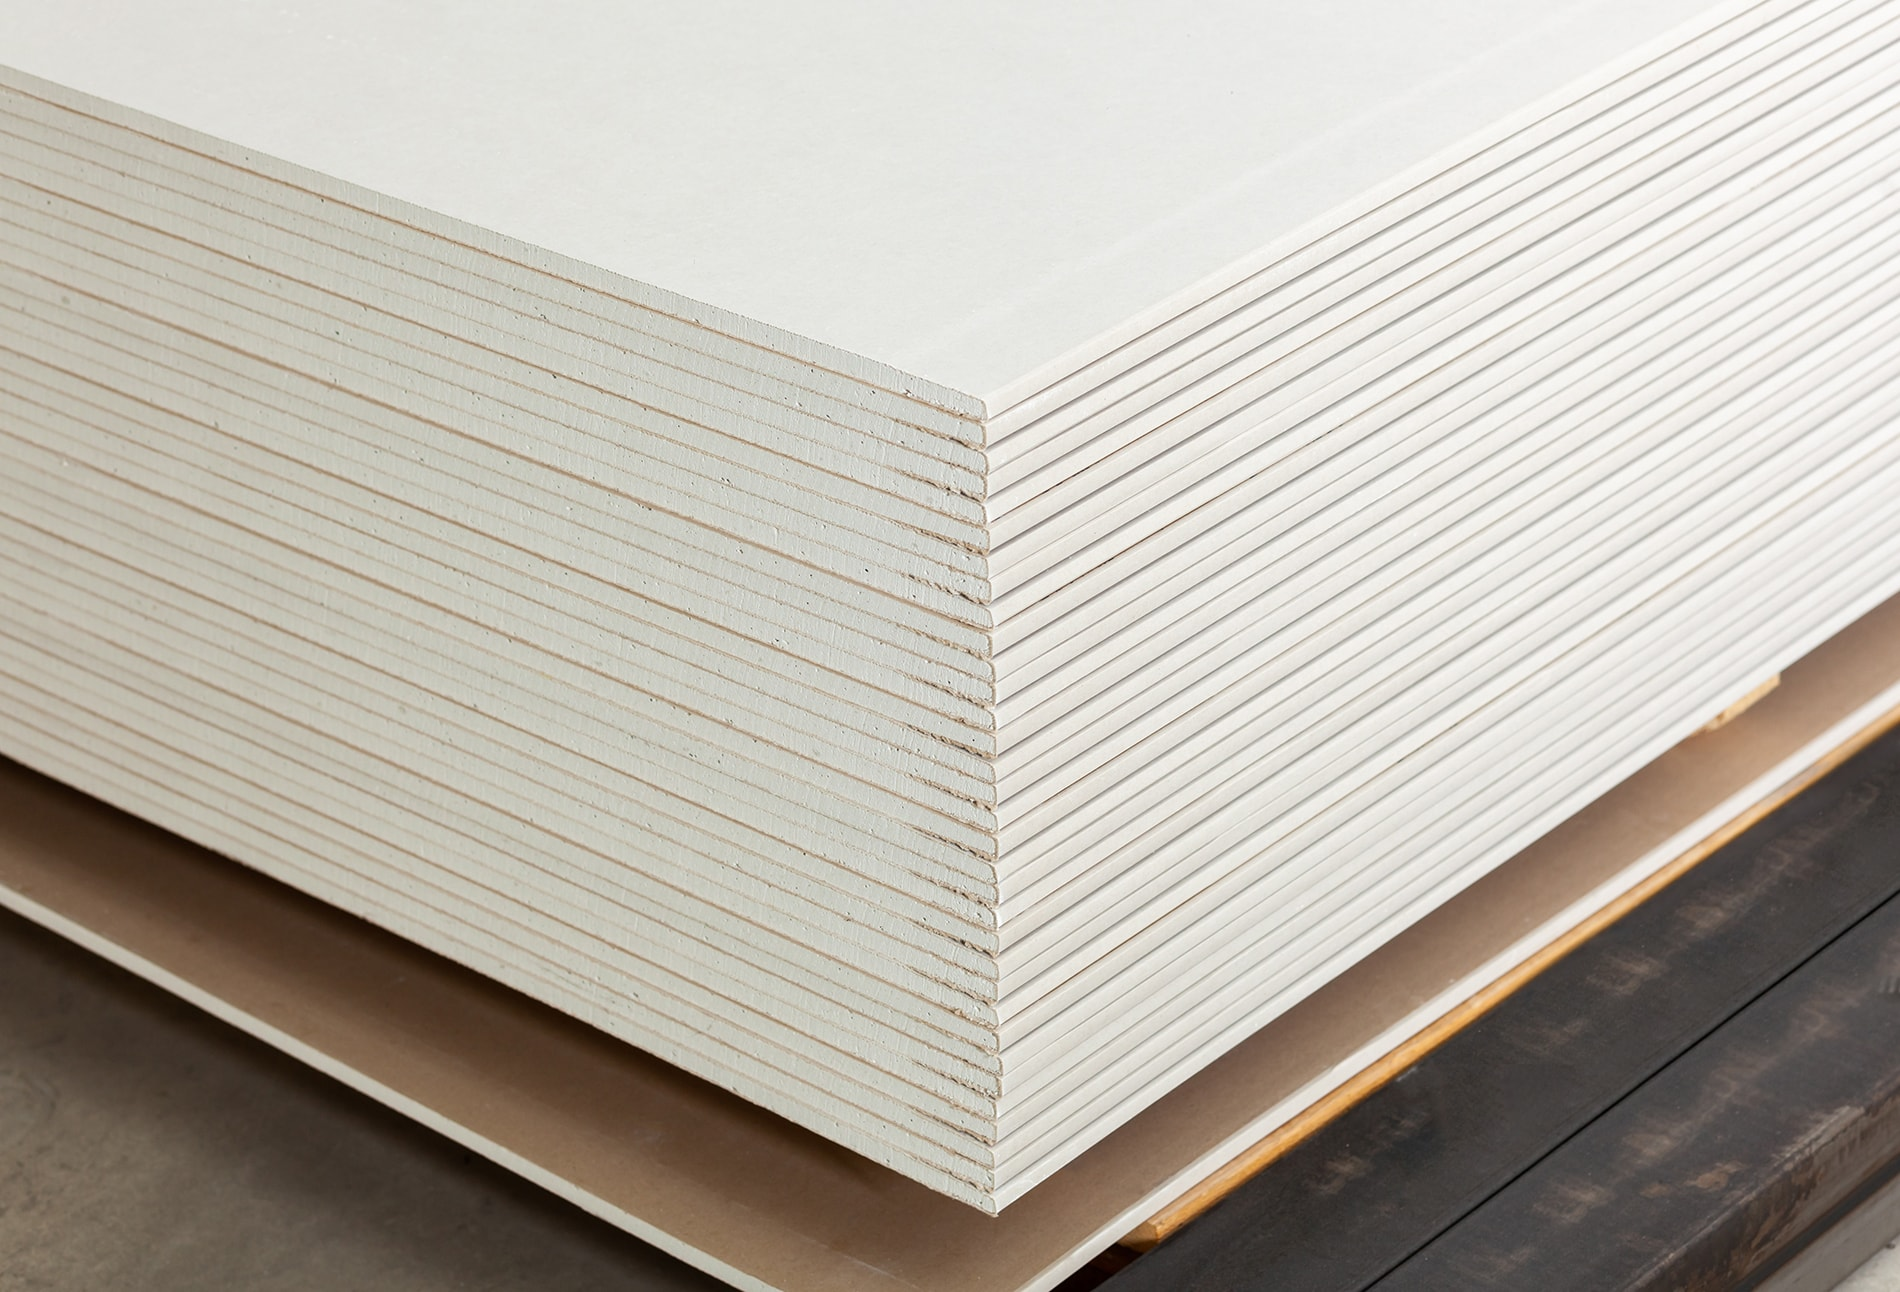 stacking-of-white-gypsum-panels-4VC9RYG-min